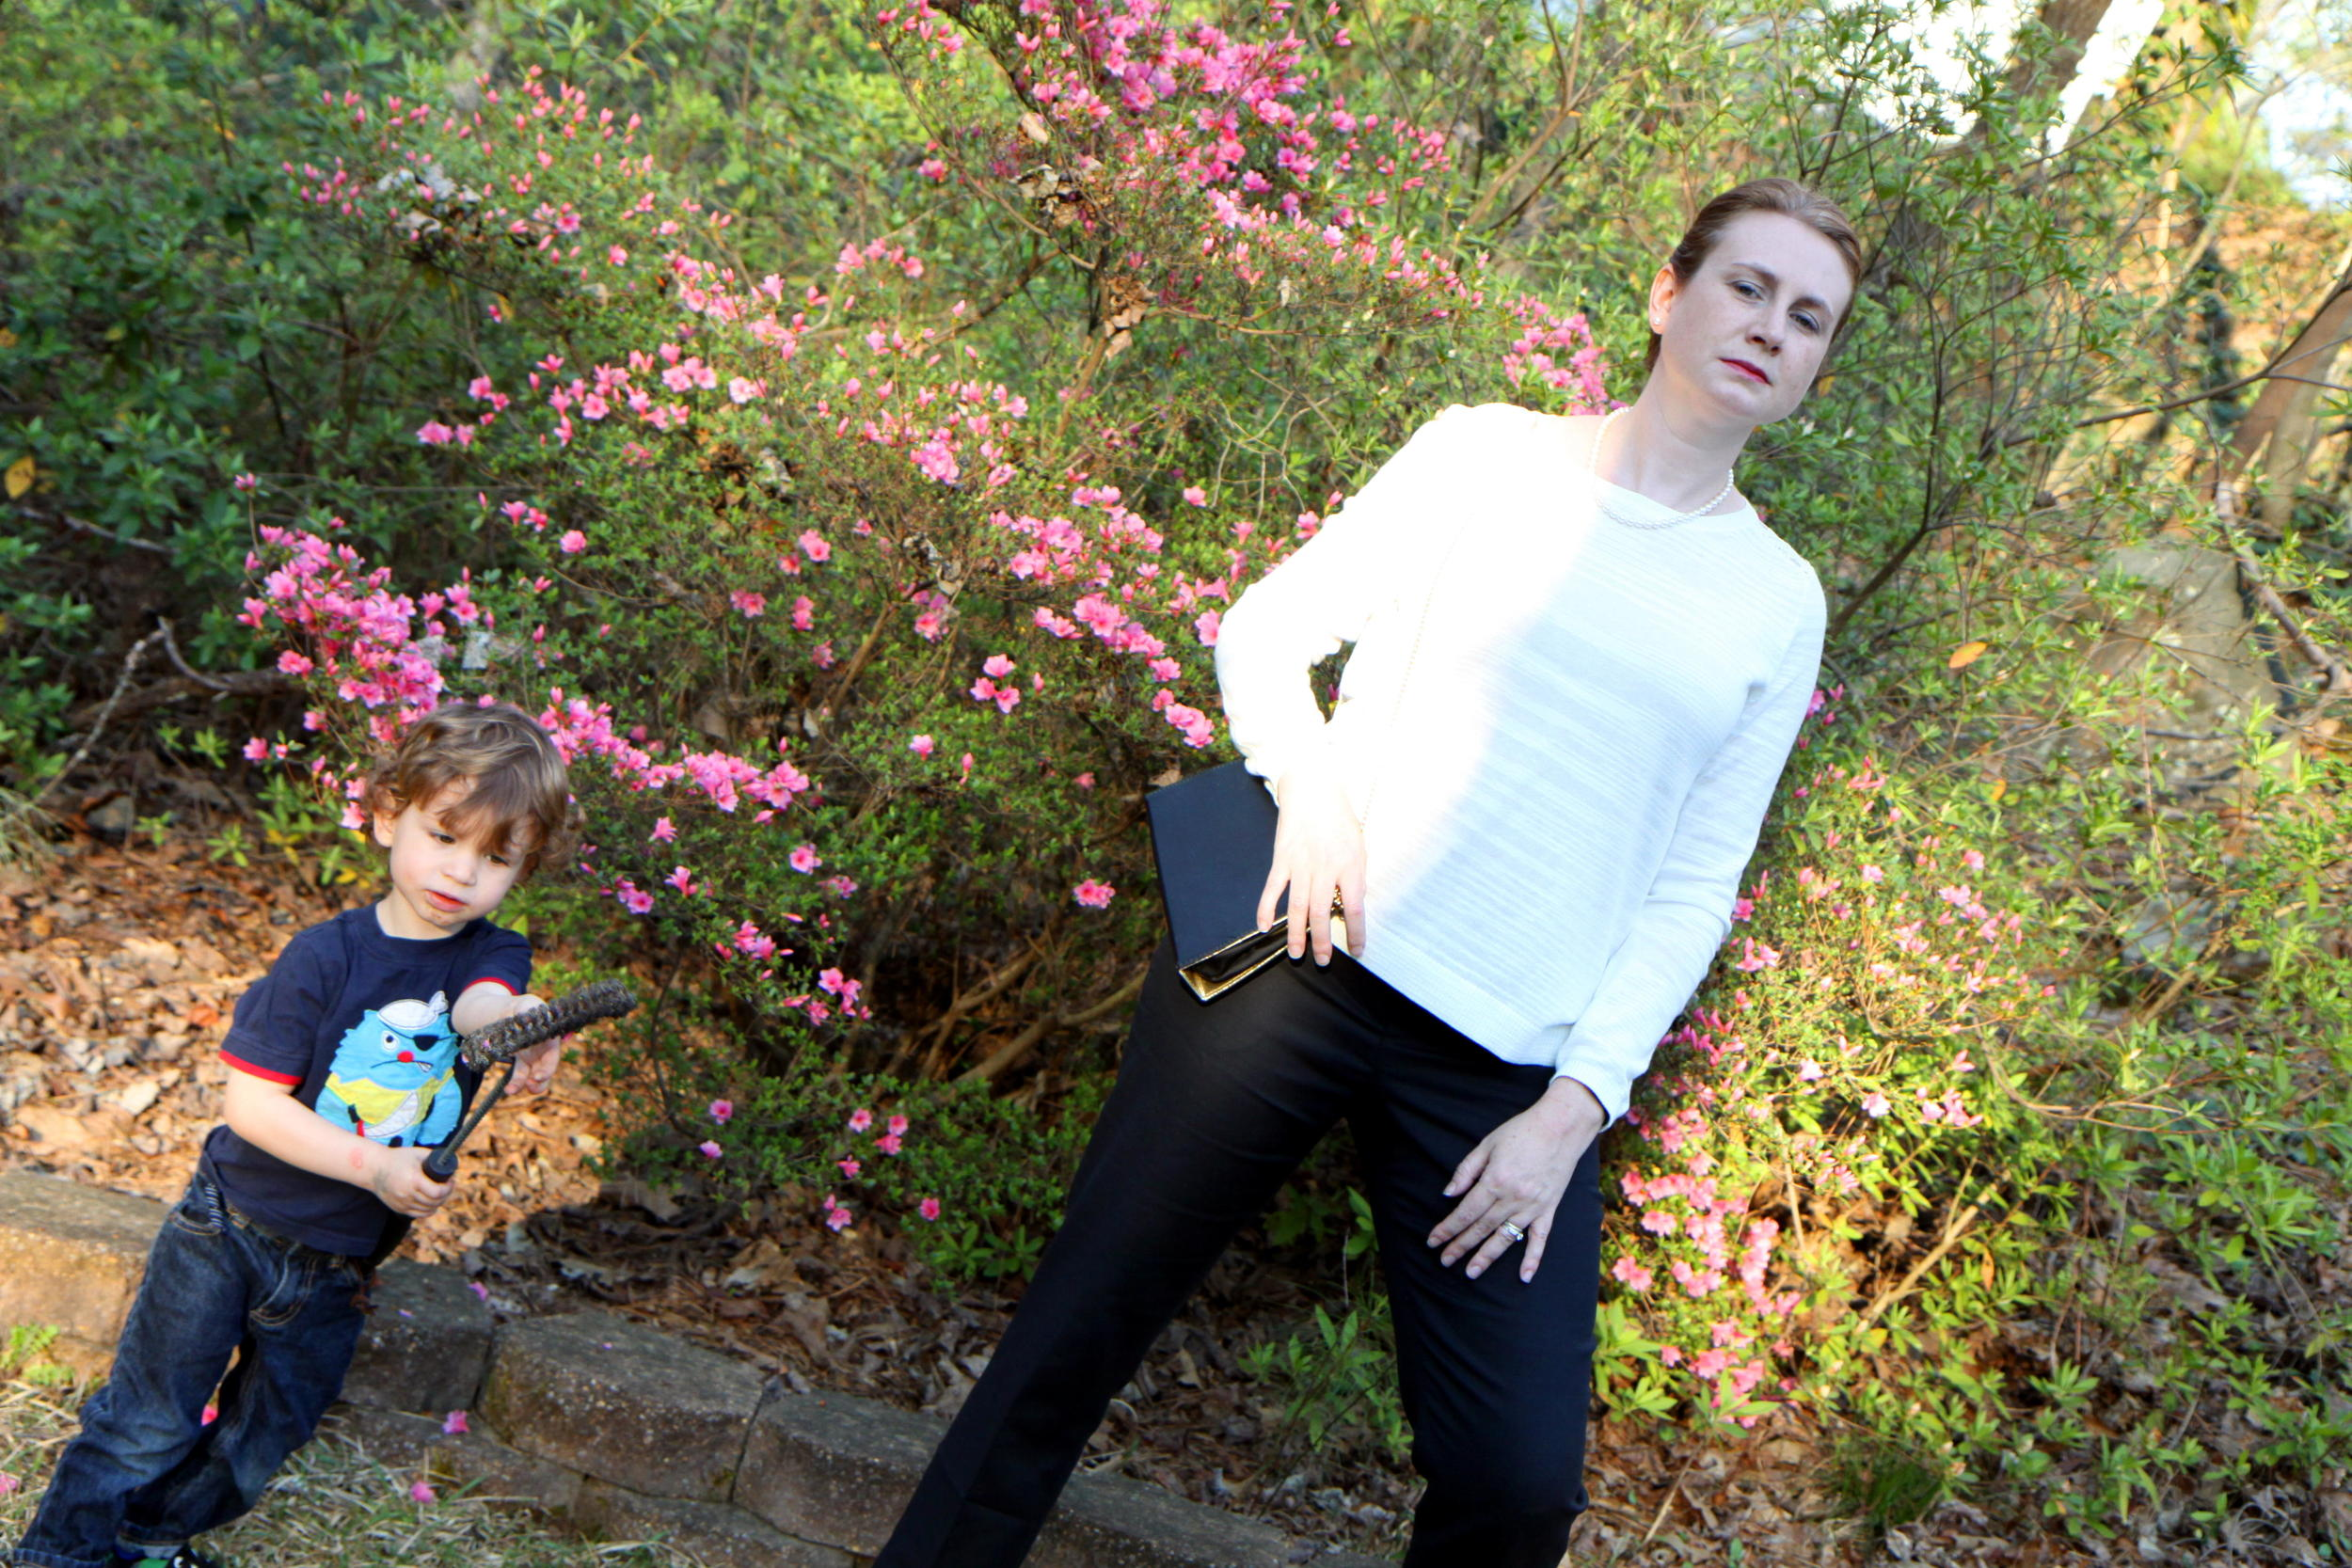 An outtake for your pleasure. I think my kid may have been modeling too!